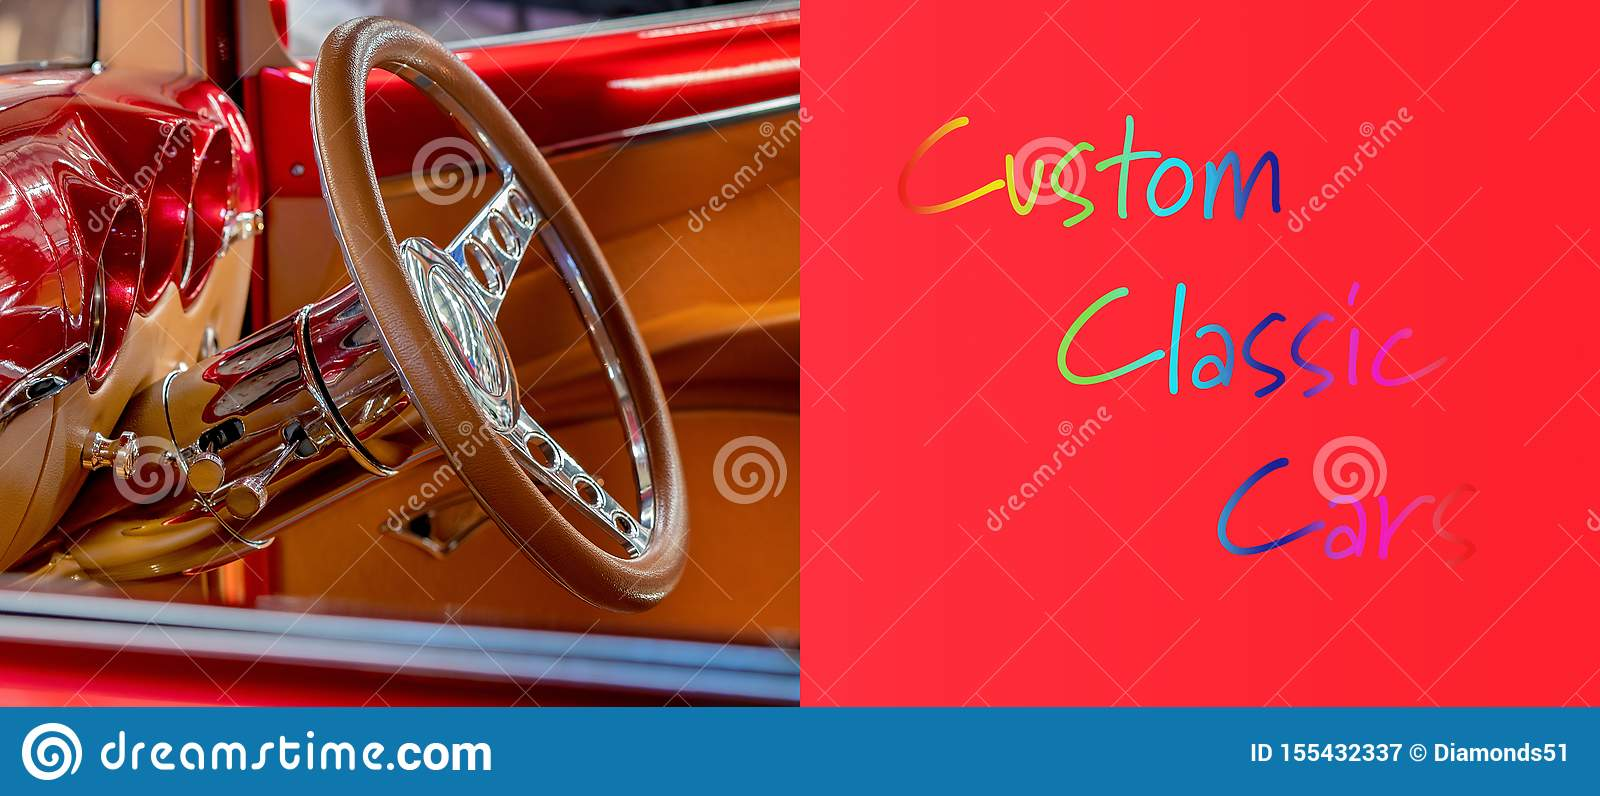 Custom Classic Vintage Interior Banner With Custom Classic Cars Text Stock Image Image Of Paint History 155432337